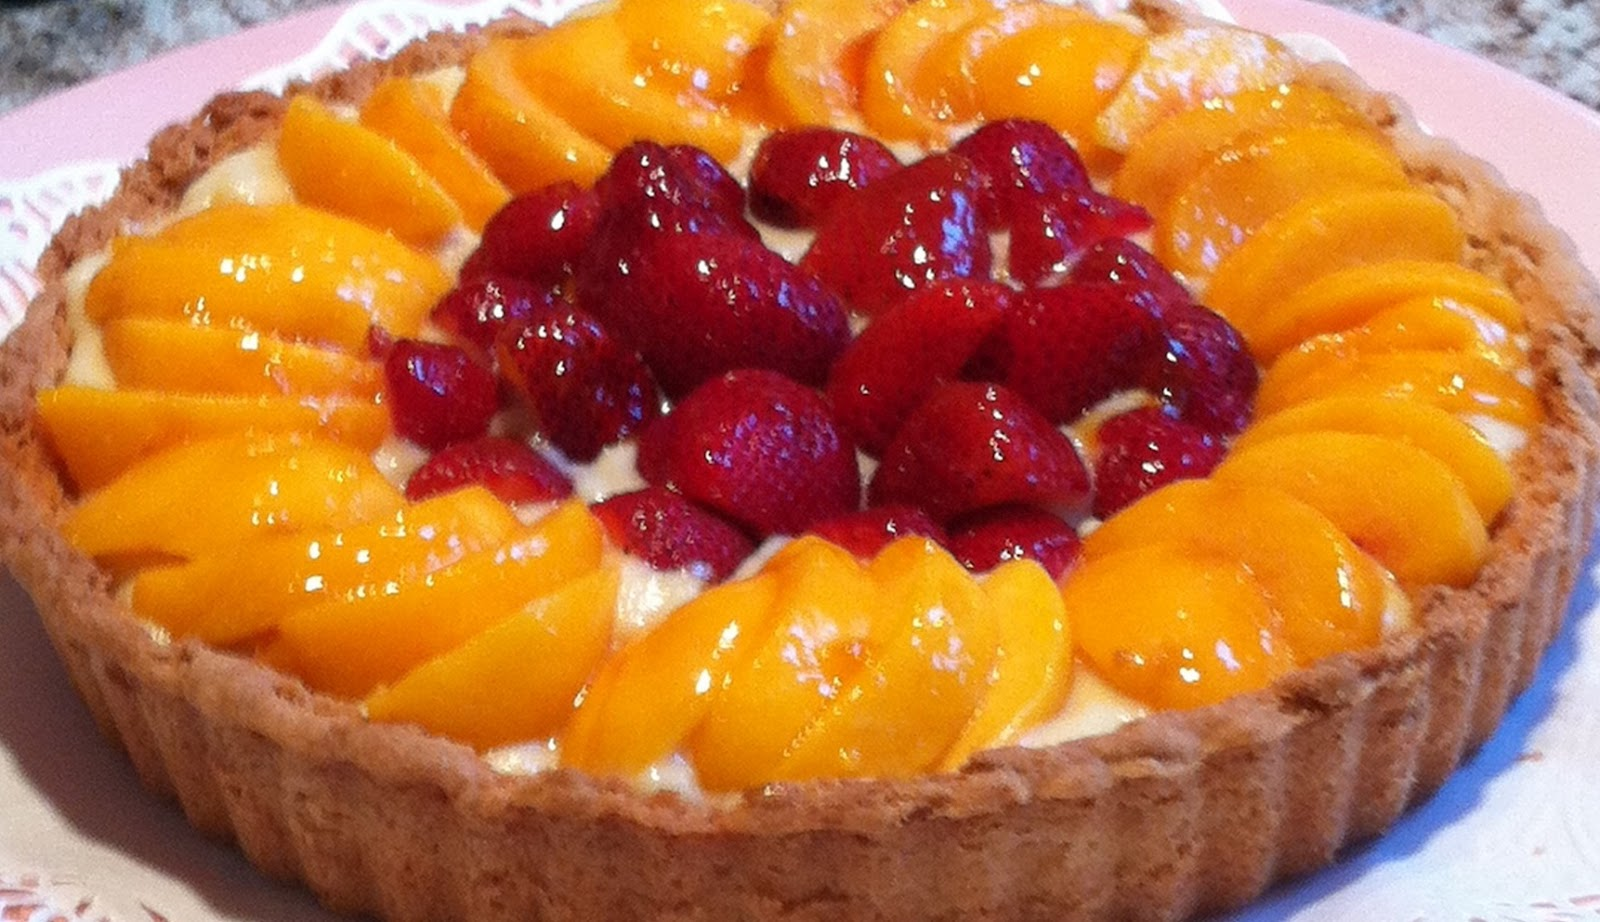 Cobbs Hill: Peach & Strawberry Tart